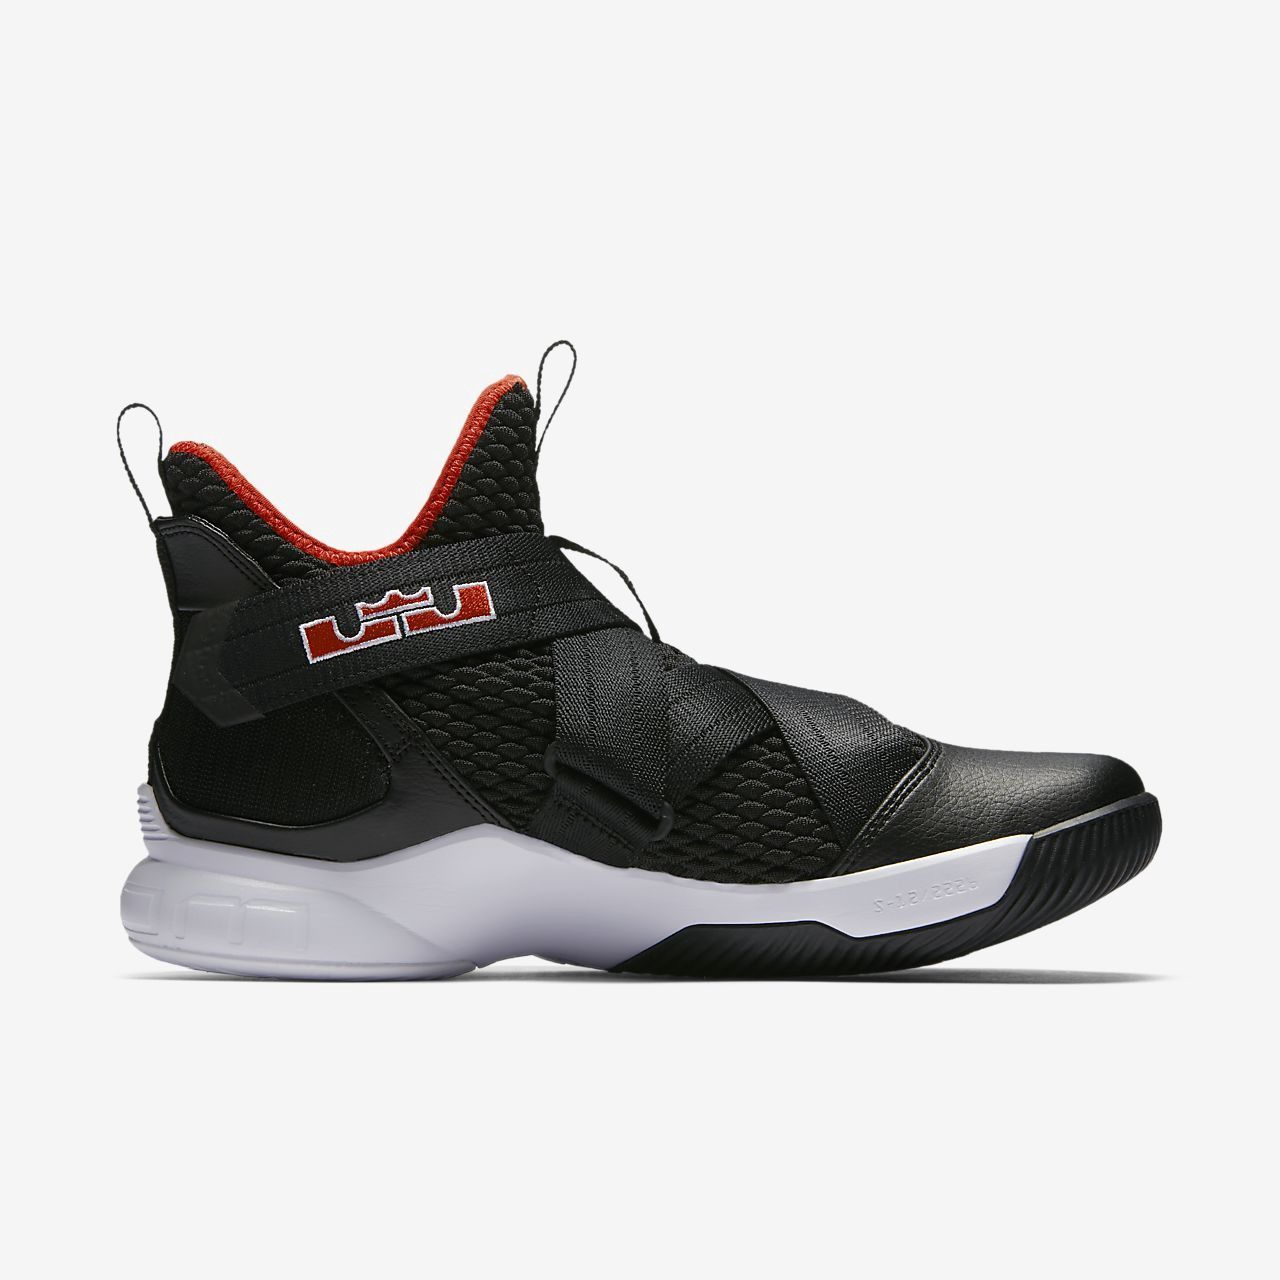 293b95055e2a ... where can i buy nike lebron soldier xii mens basketball shoe m 11.5 w  13 mensbasketball